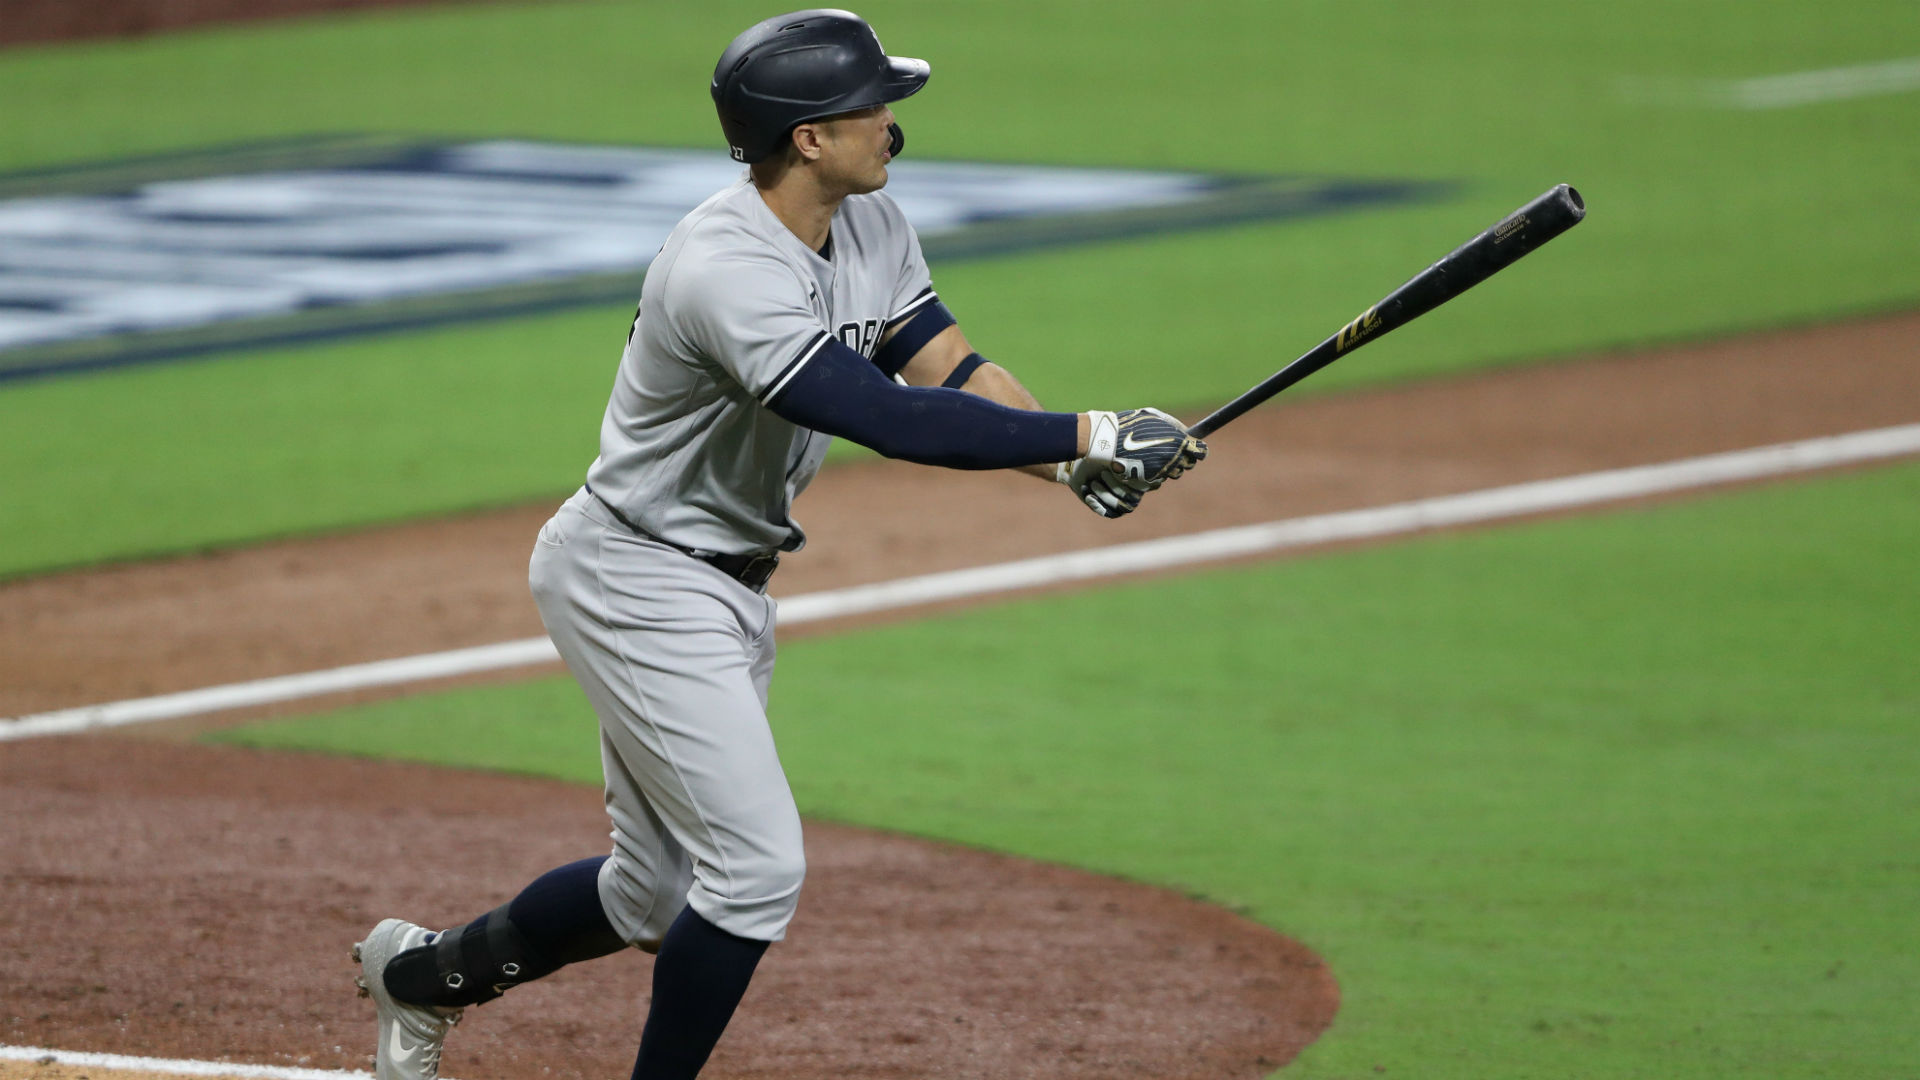 Giancarlo Stanton homers in third-straight postseason game, lifts Yankees over Rays with grand slam